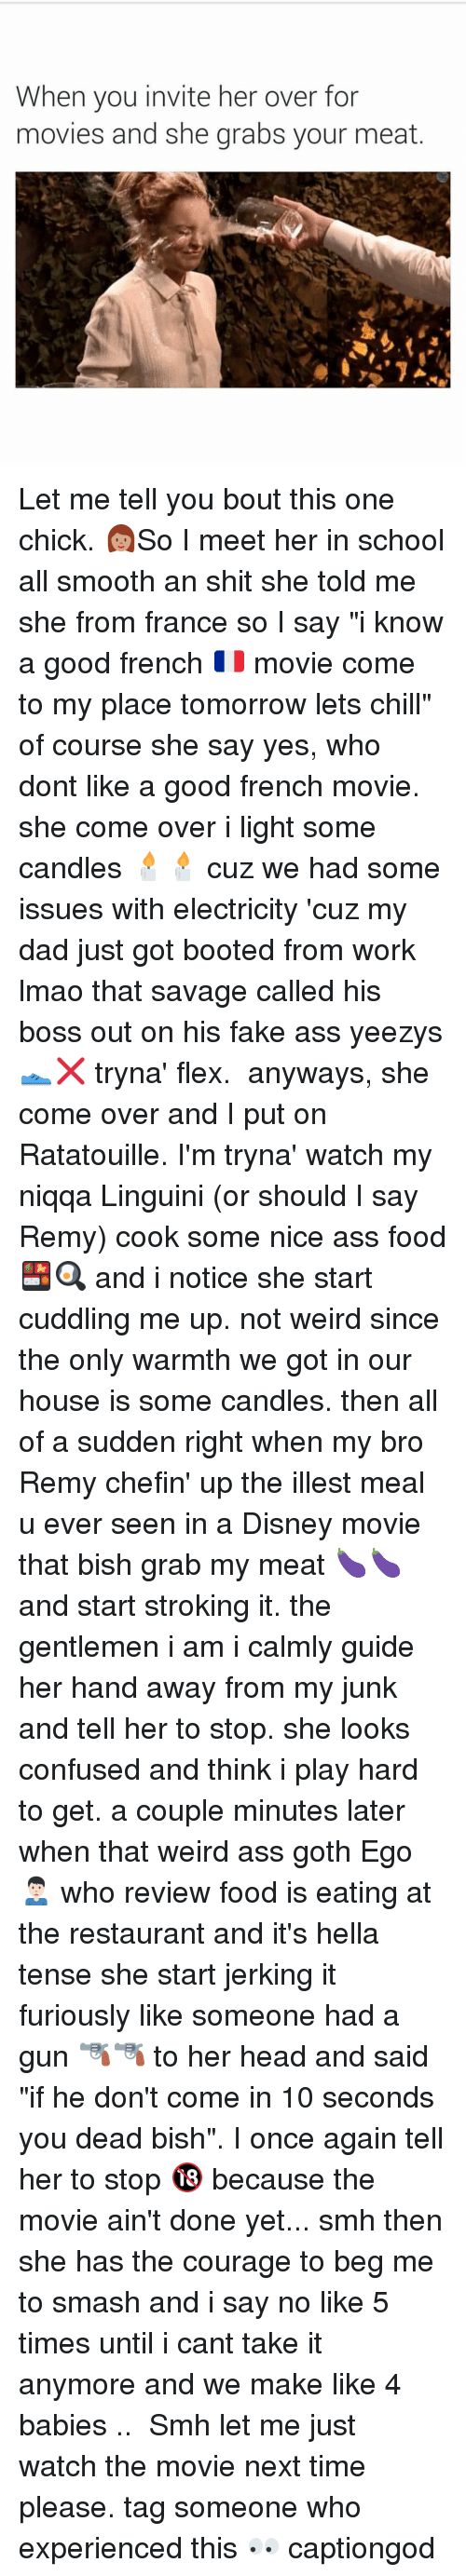 """I Cant Take It Anymore: When you invite her over for  movies and she grabs your meat Let me tell you bout this one chick. 👩🏽So I meet her in school all smooth an shit she told me she from france so I say """"i know a good french 🇫🇷 movie come to my place tomorrow lets chill"""" of course she say yes, who dont like a good french movie. she come over i light some candles 🕯🕯 cuz we had some issues with electricity 'cuz my dad just got booted from work lmao that savage called his boss out on his fake ass yeezys 👟❌ tryna' flex. ⠀ anyways, she come over and I put on Ratatouille. I'm tryna' watch my niqqa Linguini (or should I say Remy) cook some nice ass food 🍱🍳 and i notice she start cuddling me up. not weird since the only warmth we got in our house is some candles. then all of a sudden right when my bro Remy chefin' up the illest meal u ever seen in a Disney movie that bish grab my meat 🍆🍆 and start stroking it. the gentlemen i am i calmly guide her hand away from my junk and tell her to stop. she looks confused and think i play hard to get. a couple minutes later when that weird ass goth Ego 🙍🏻♂️ who review food is eating at the restaurant and it's hella tense she start jerking it furiously like someone had a gun 🔫🔫 to her head and said """"if he don't come in 10 seconds you dead bish"""". I once again tell her to stop 🔞 because the movie ain't done yet... smh then she has the courage to beg me to smash and i say no like 5 times until i cant take it anymore and we make like 4 babies .. ⠀ Smh let me just watch the movie next time please. tag someone who experienced this 👀 captiongod"""